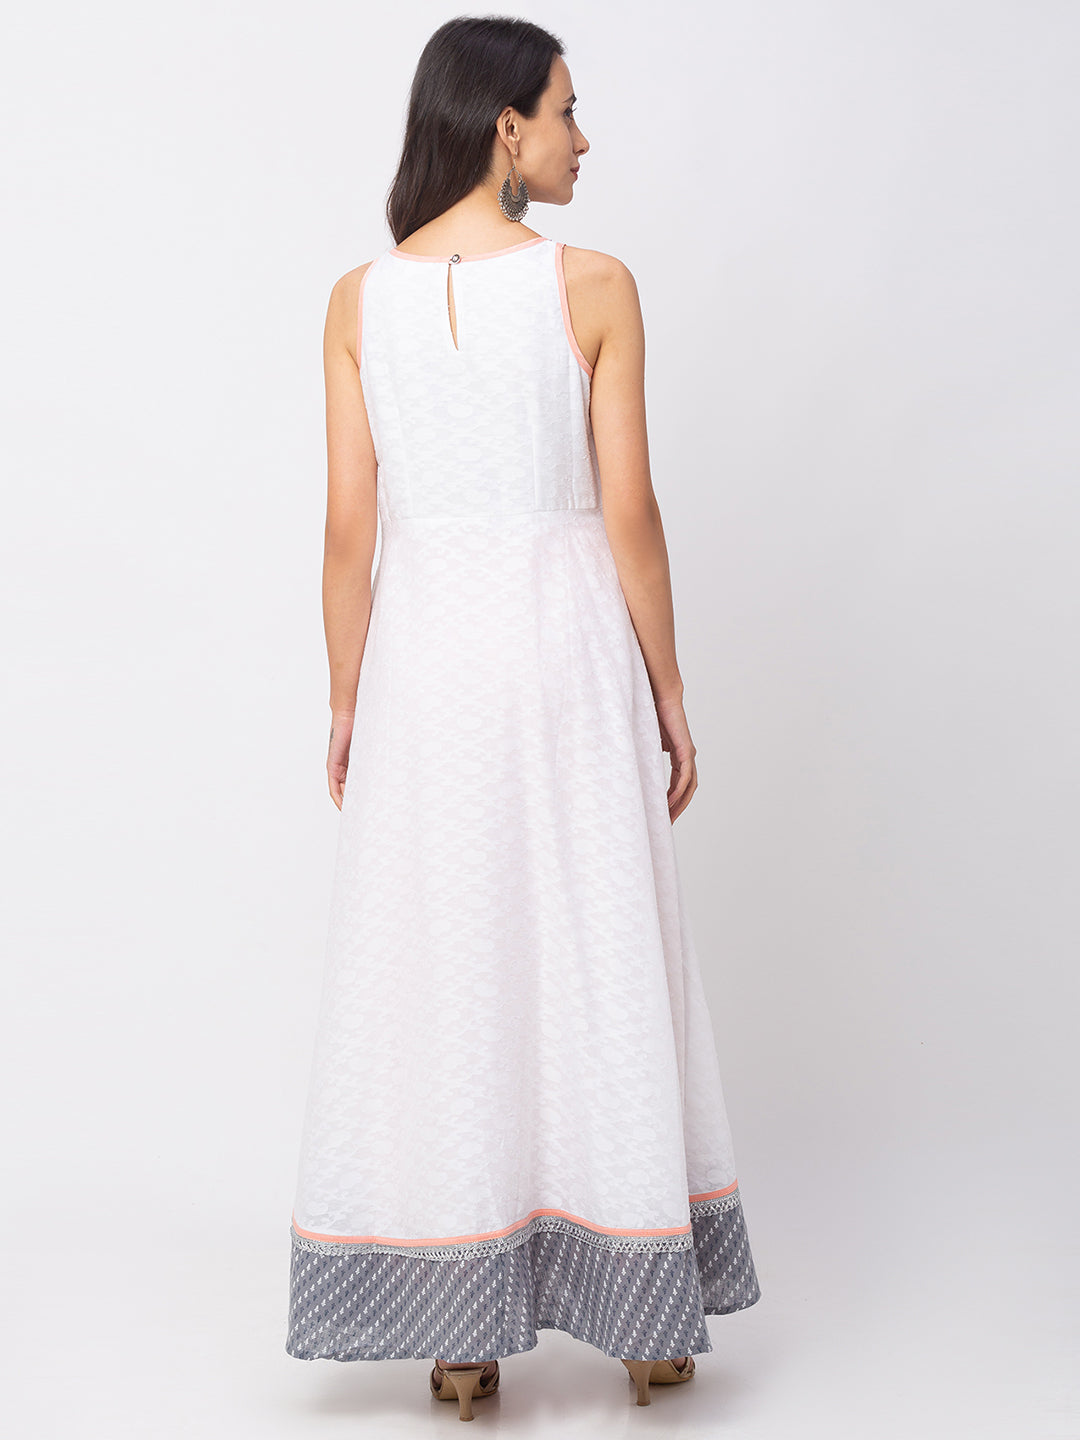 Globus White Printed Dress-3